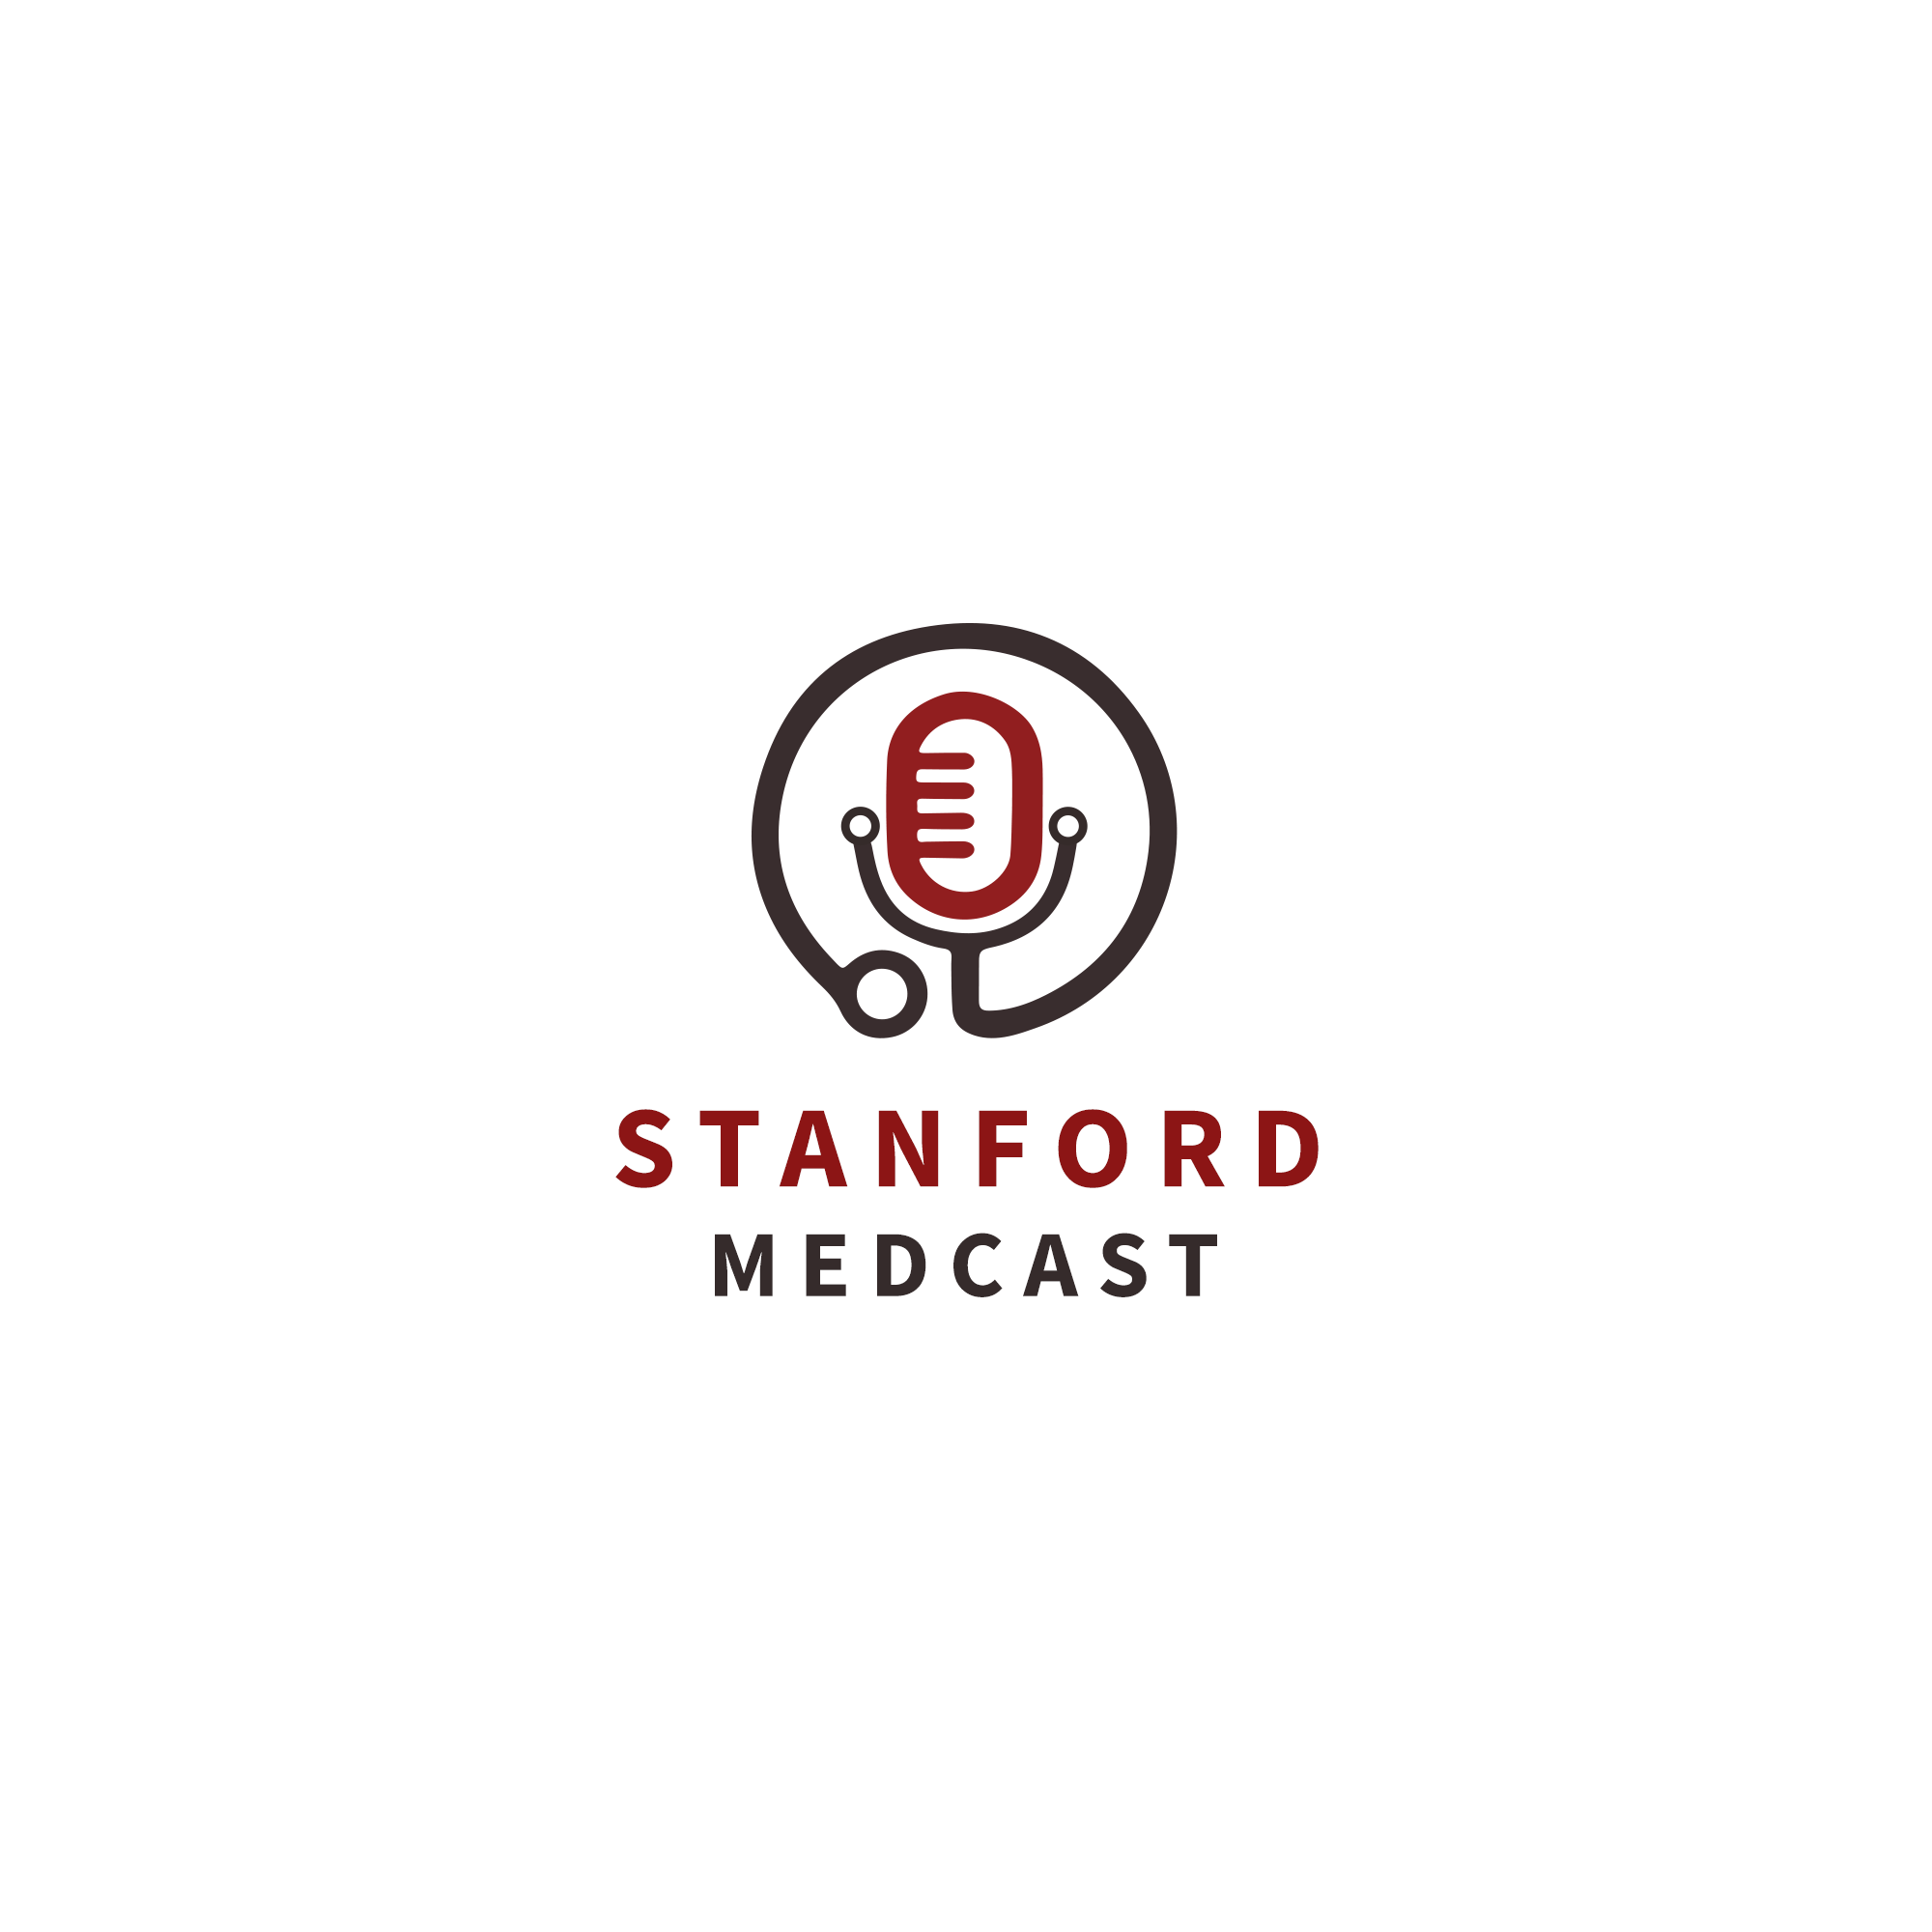 Stanford Medcast Episode 18: COVID-19 Mini-series - Physician Wellness Banner